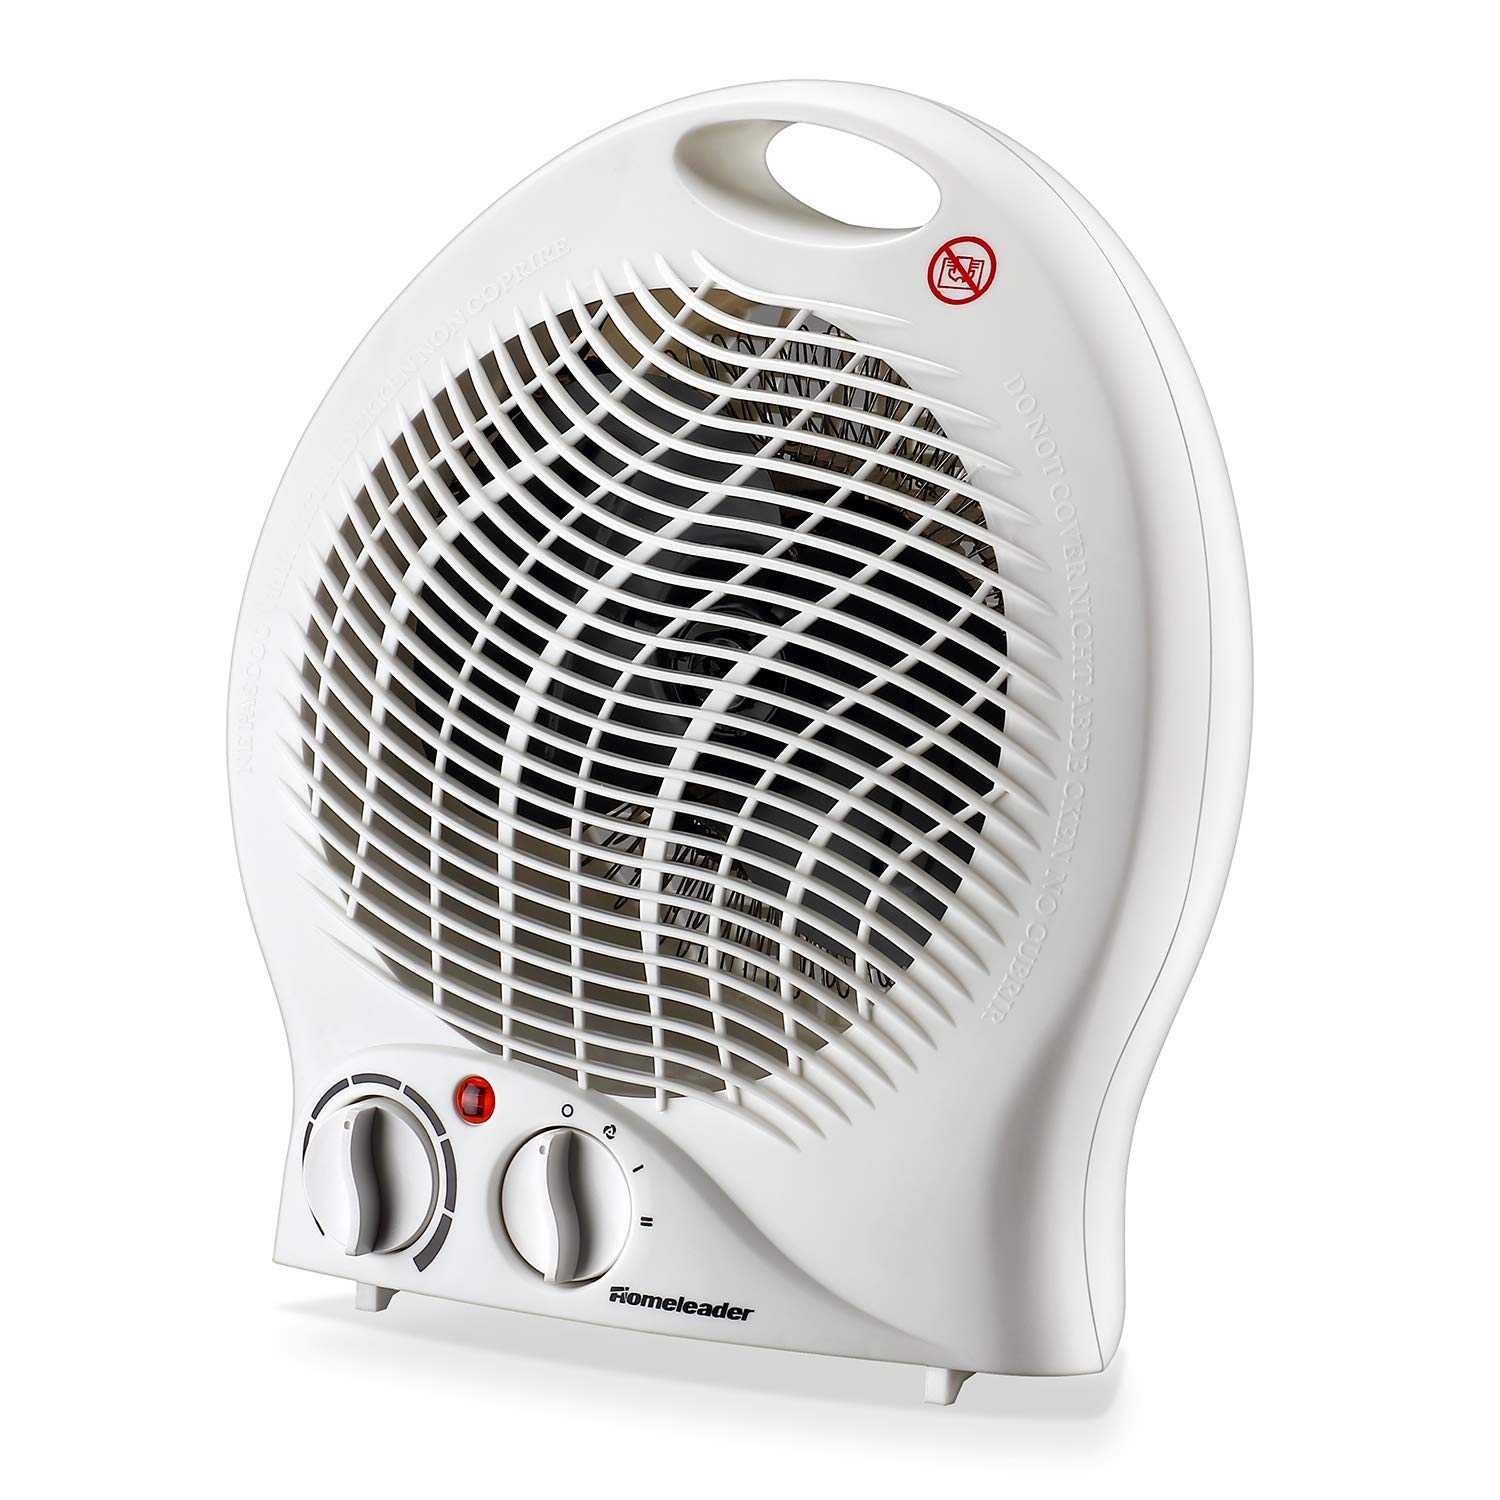 Homeleader 2-Speed Space Heater, Portable Fan Heater with Thermostat, Tabletop Floor Ceramic Heater for Office Small Space